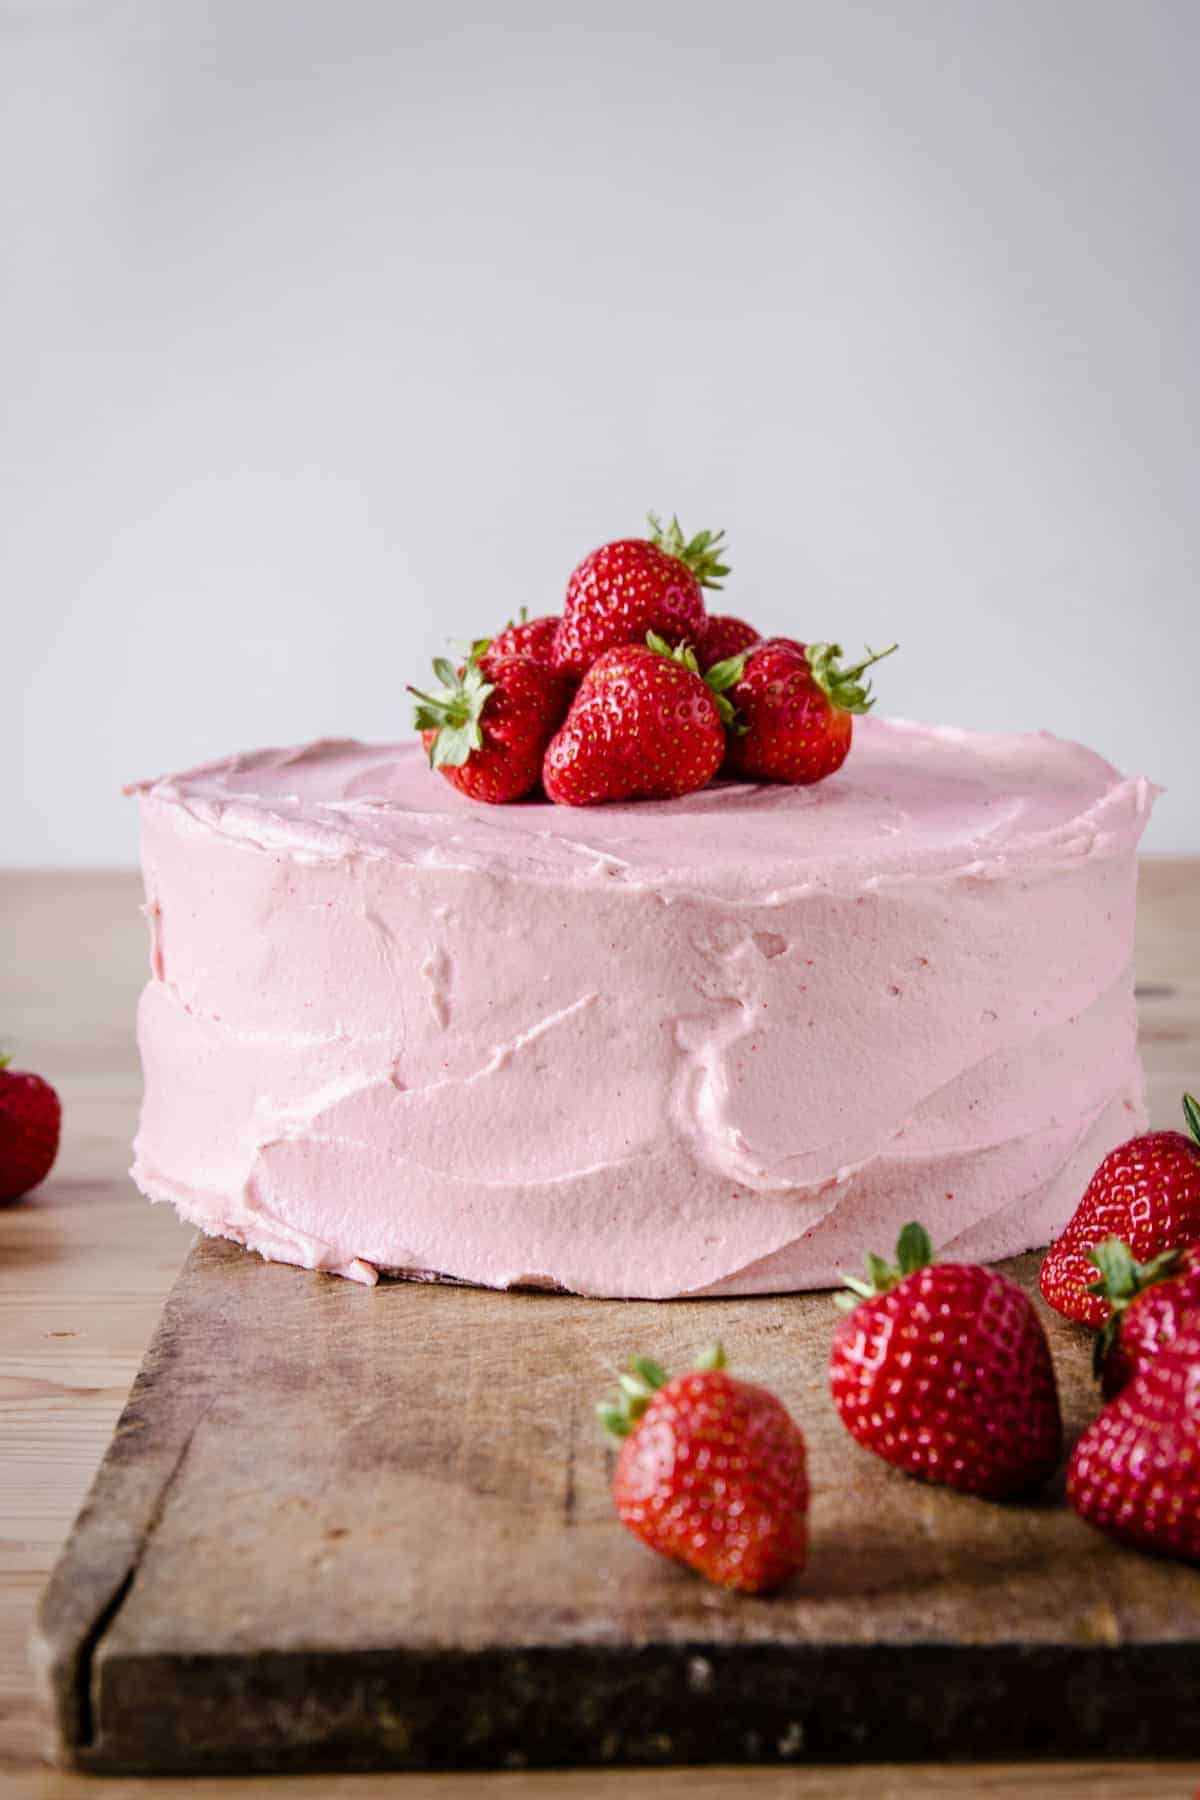 strawberry cake on wooden board surrounded by strawberries